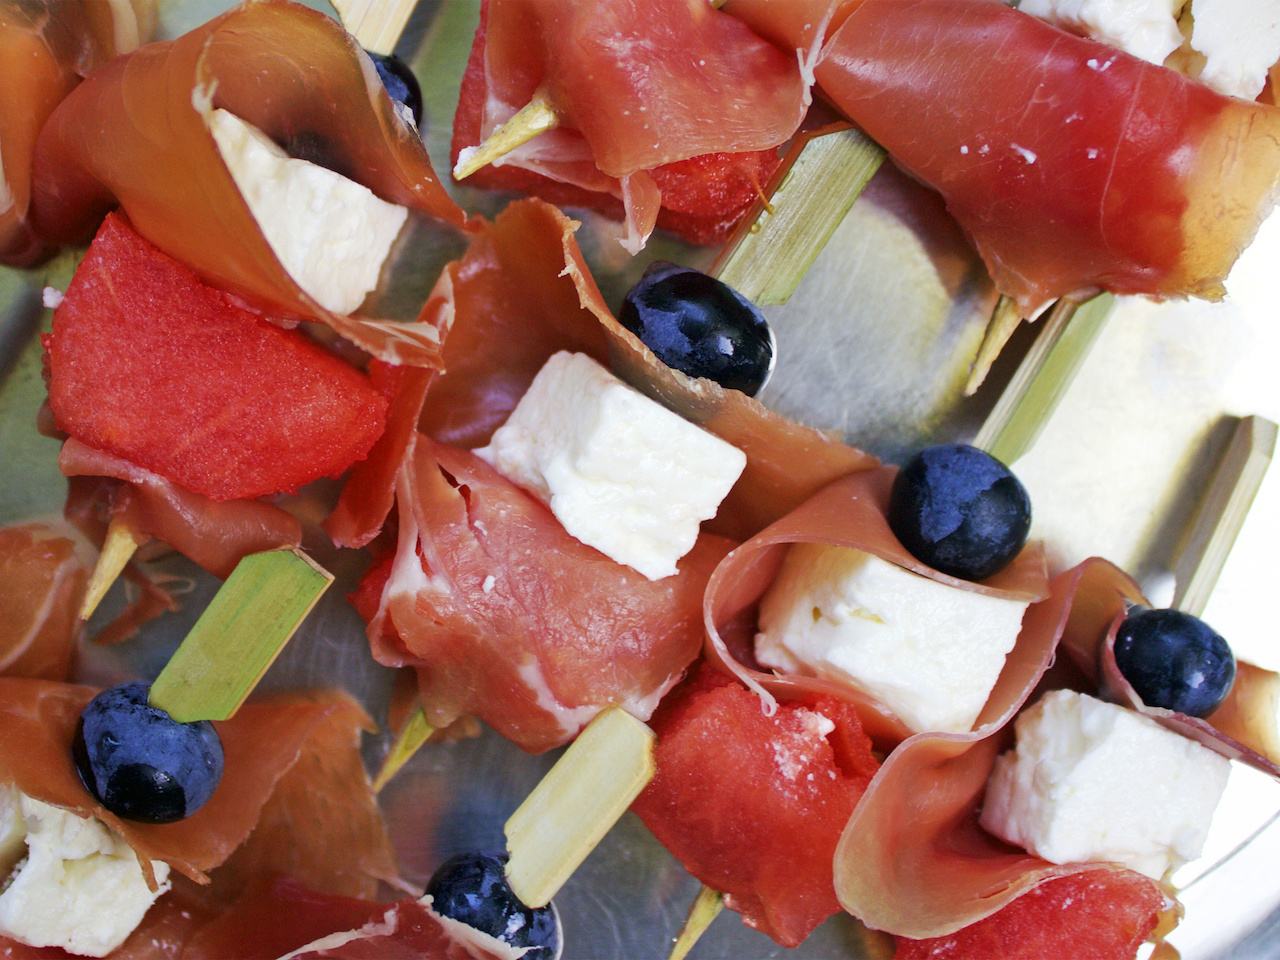 Proscuitto, feta, watermelon and blueberry on this festive skewer.